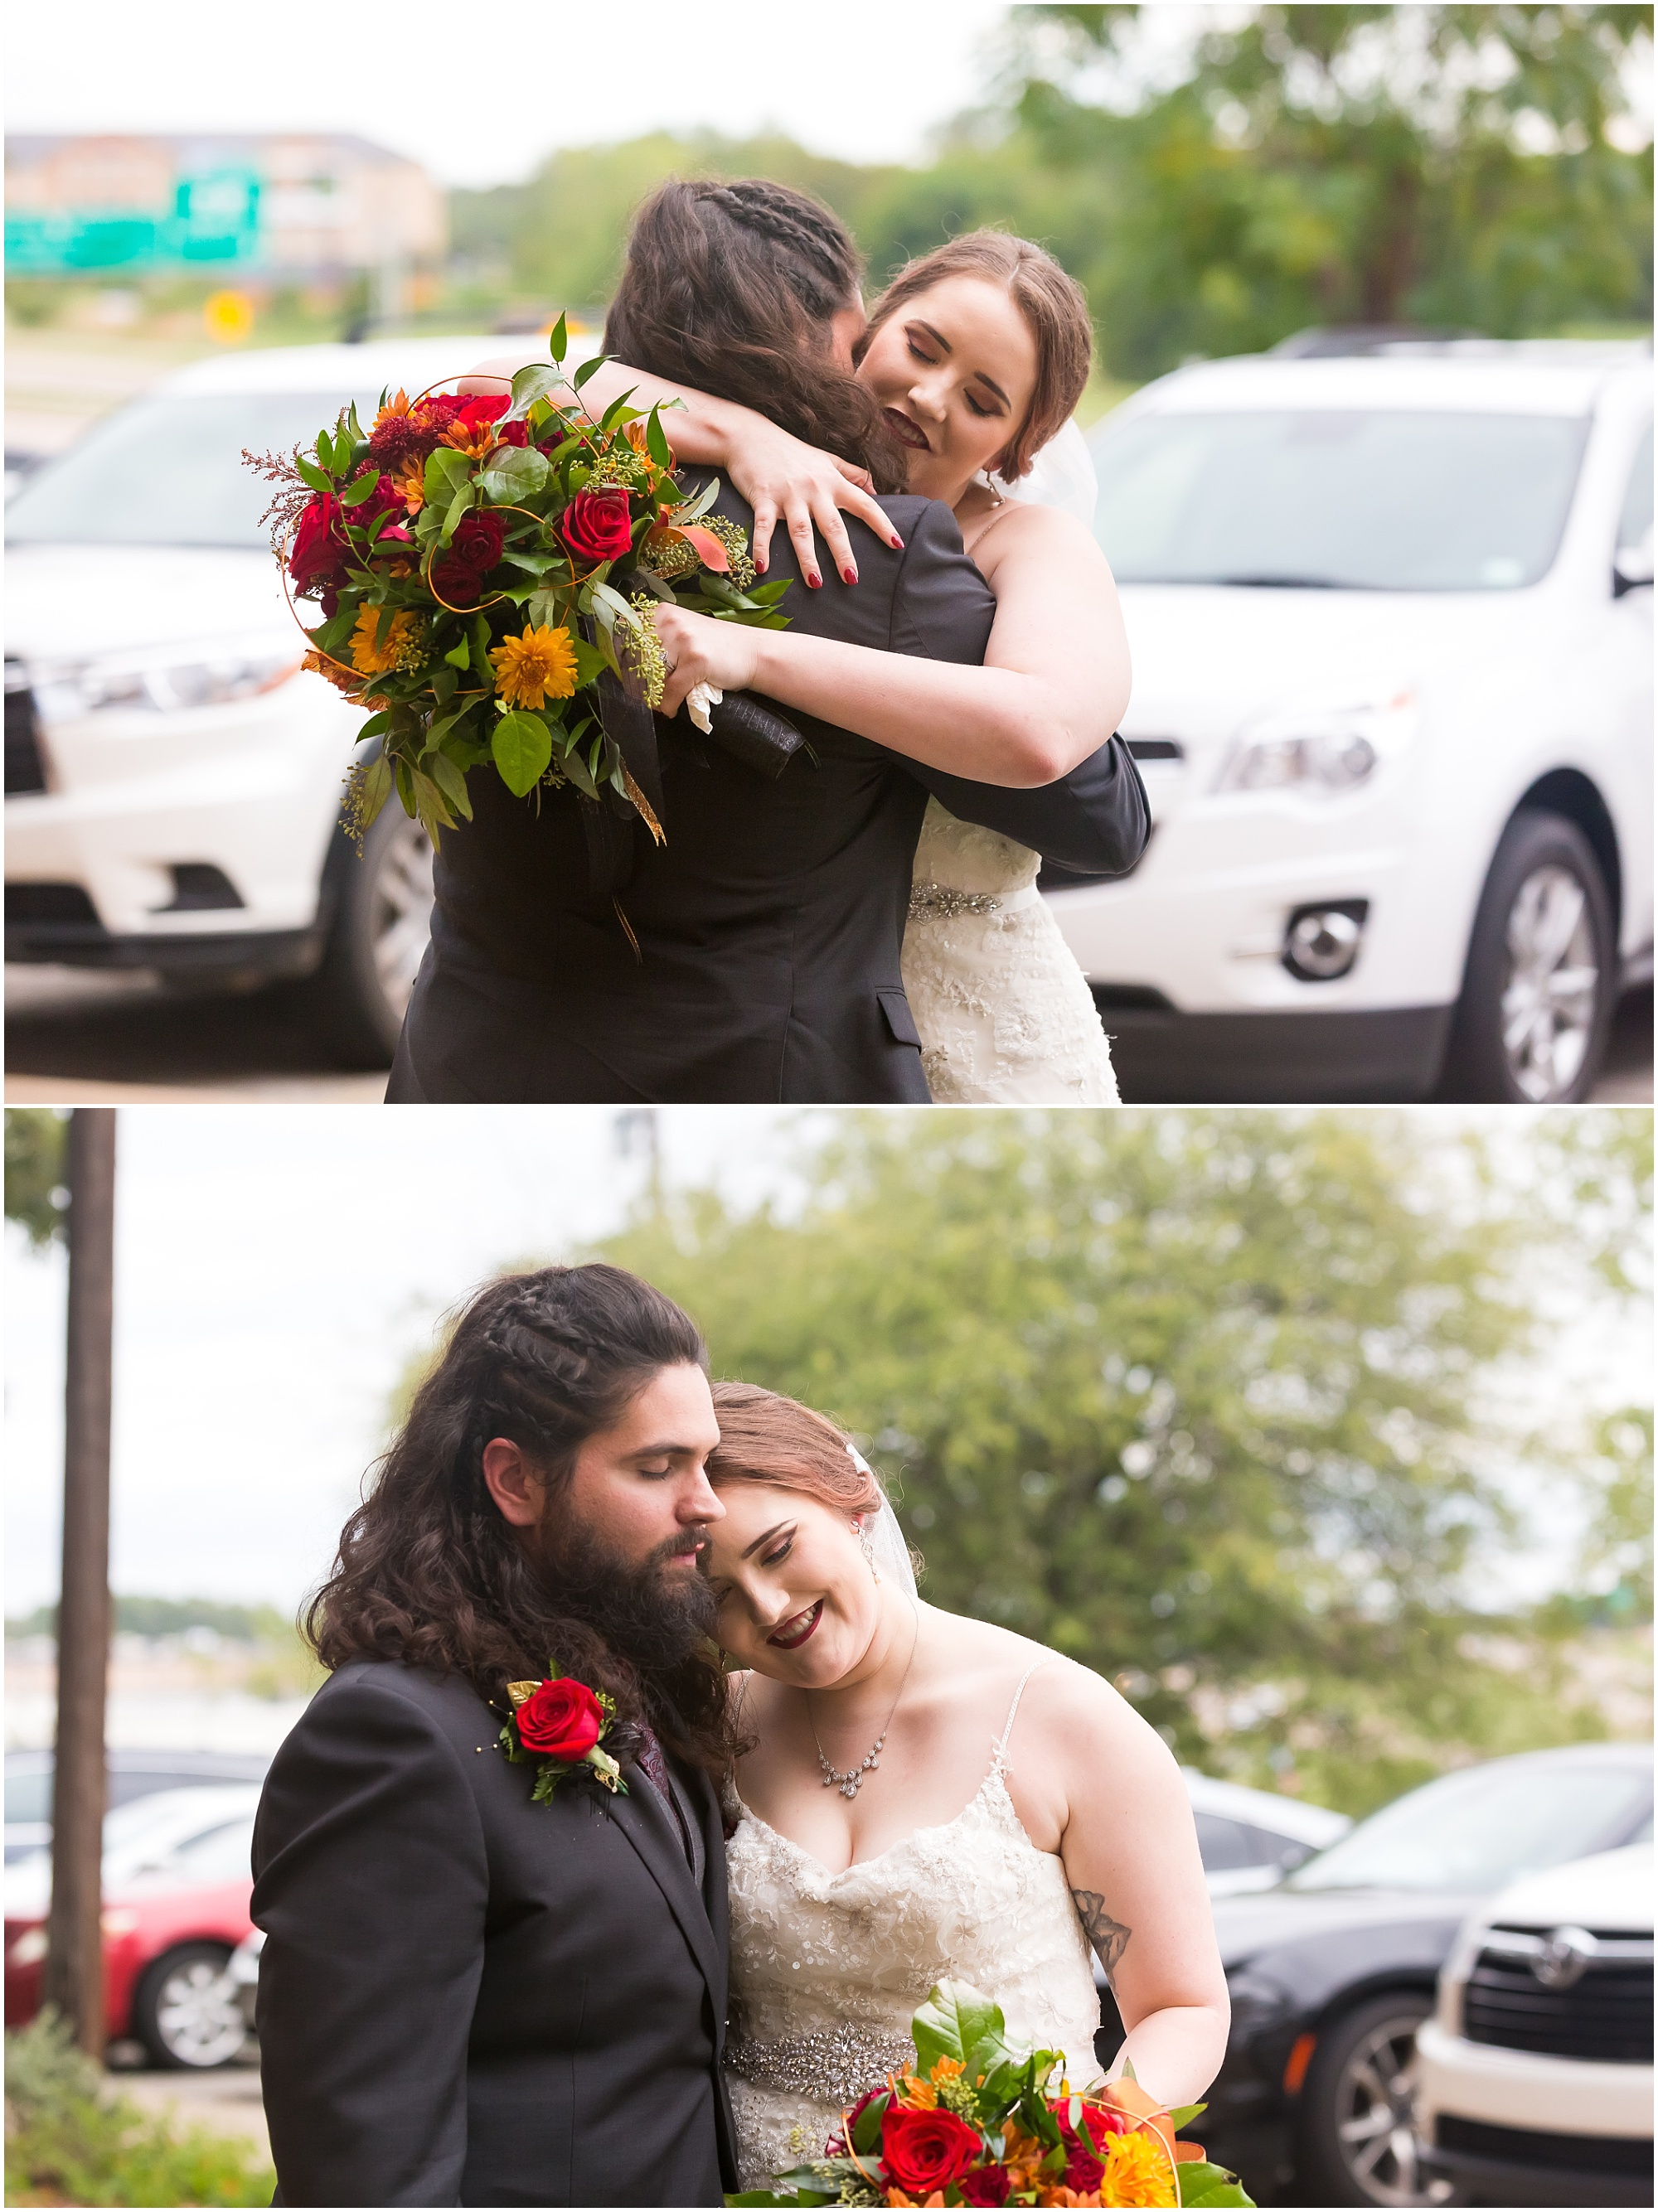 Fall wedding in Waco, TX - Jason & Melaina Photography - http://jasonandmelaina.com